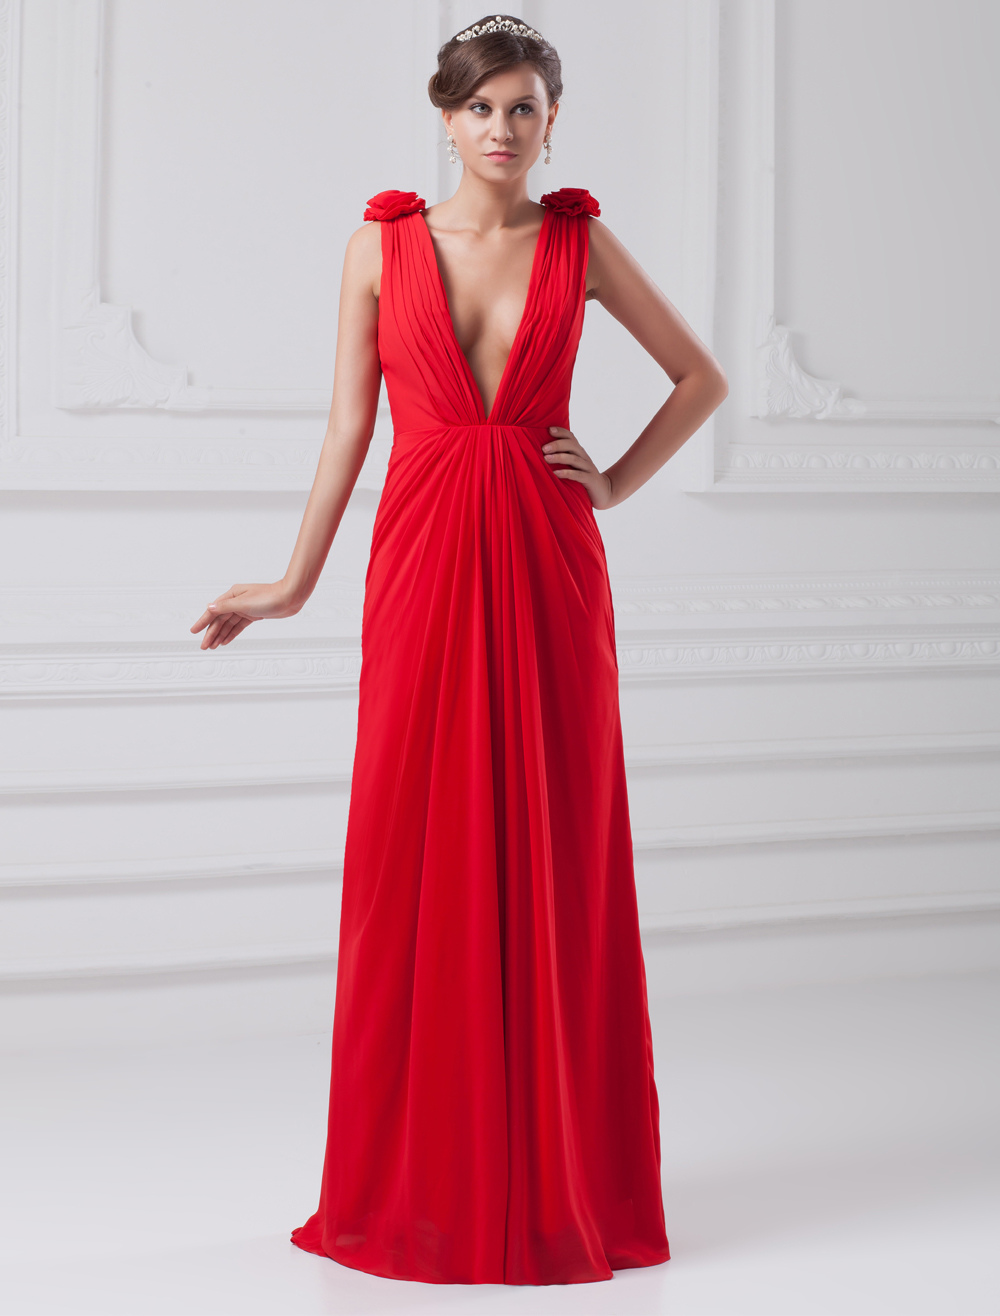 Buy Chic Red Chiffon Floral V-Neck Fashion Evening Dress for $108.89 in Milanoo store